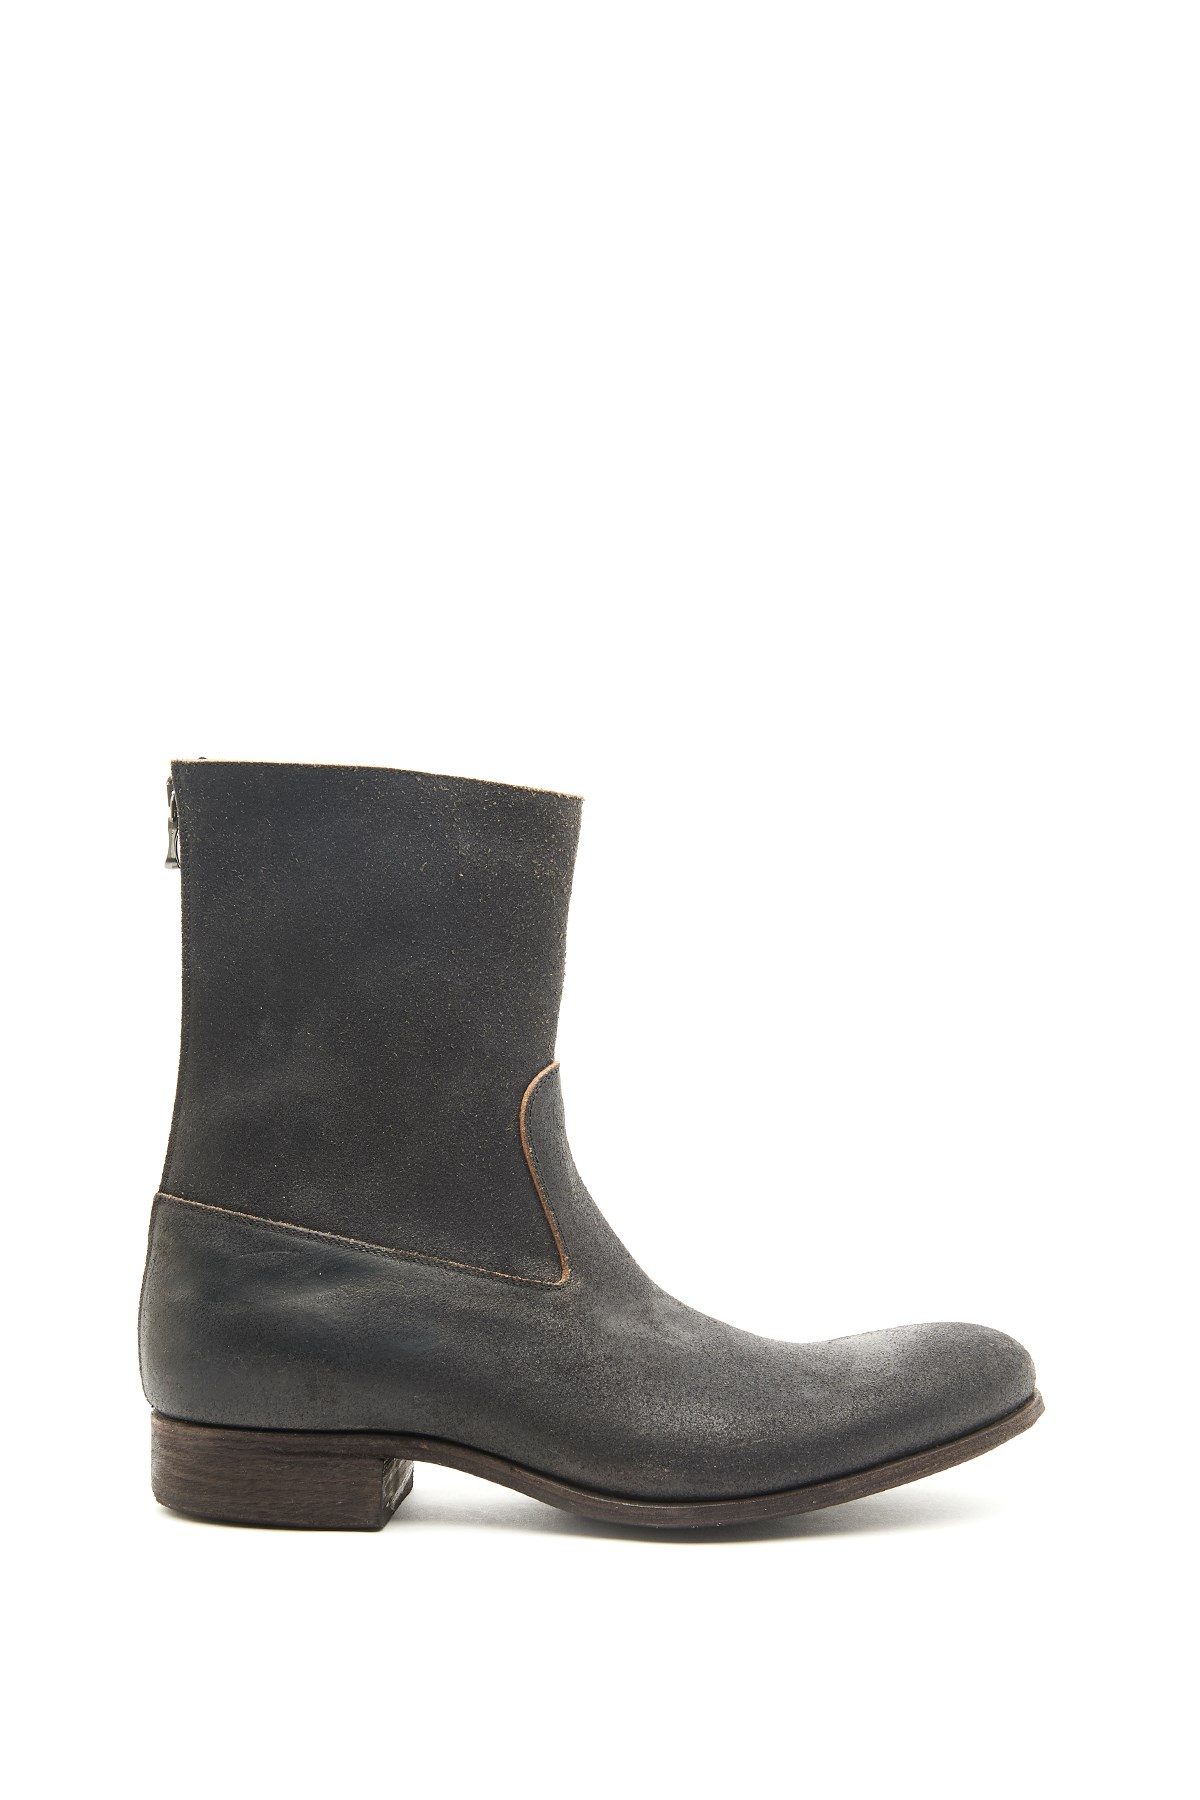 913c01fc3 carpe diem back zip boots available on julian-fashion.com - 46427